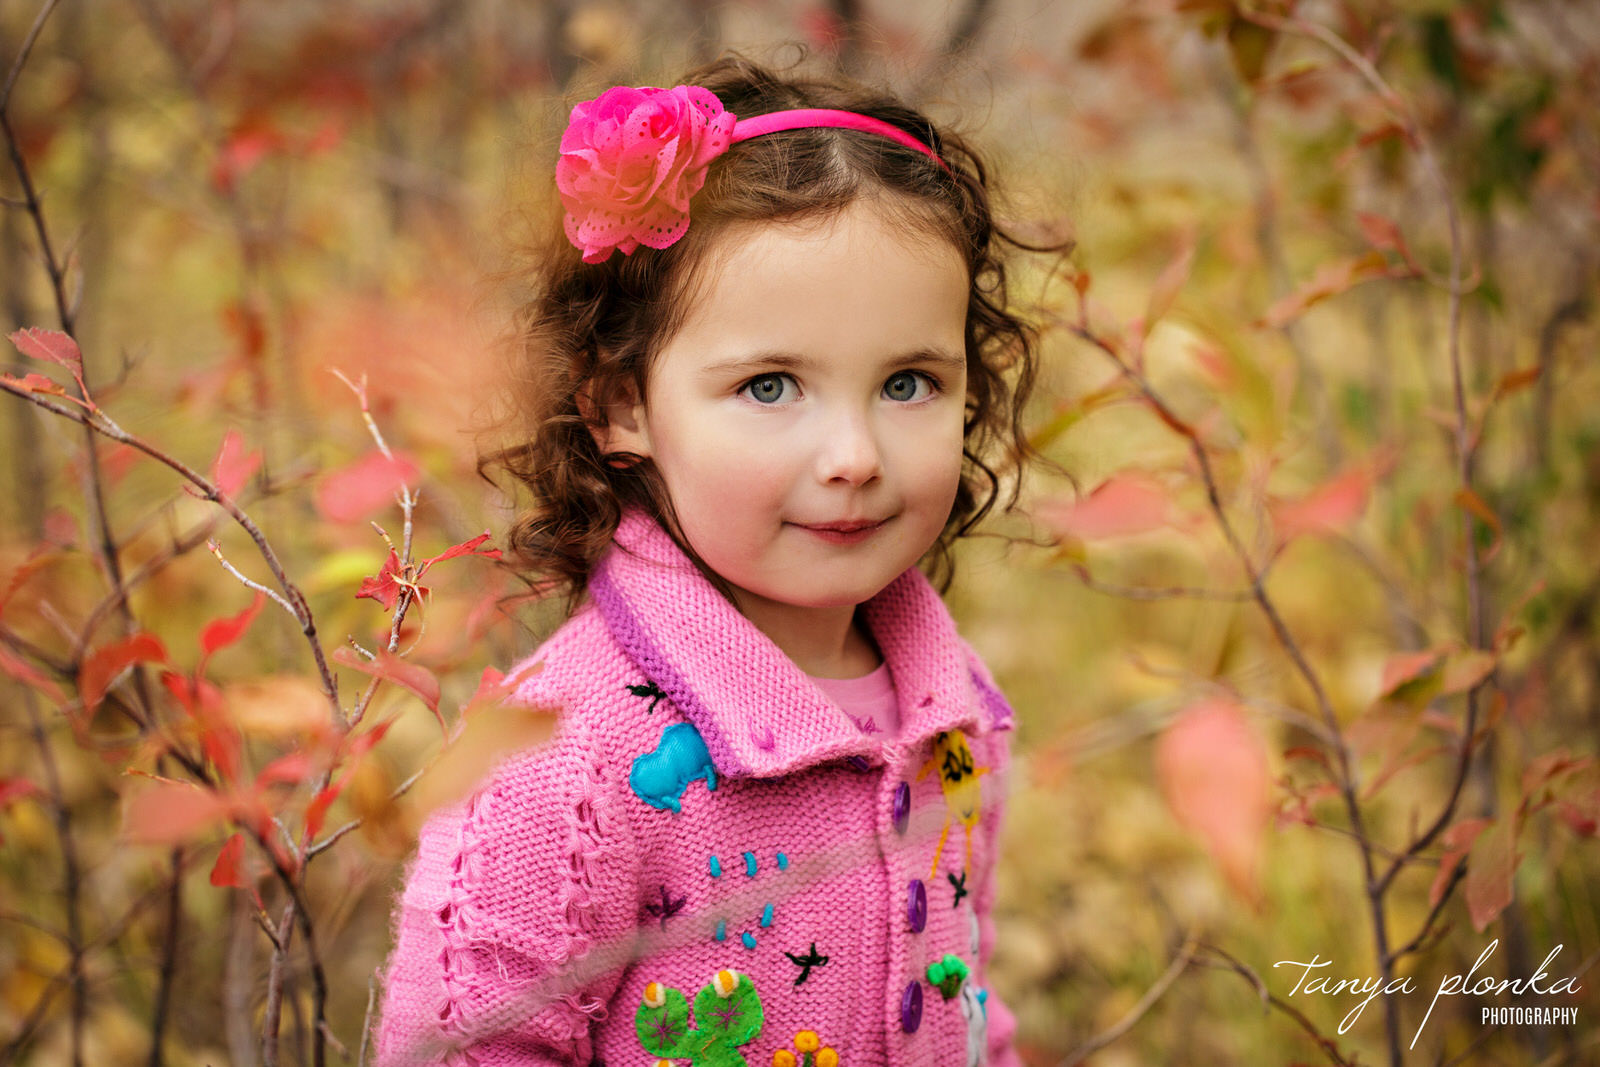 young girl in pink sweater surrounded by red autumn leaves in Lethbridge